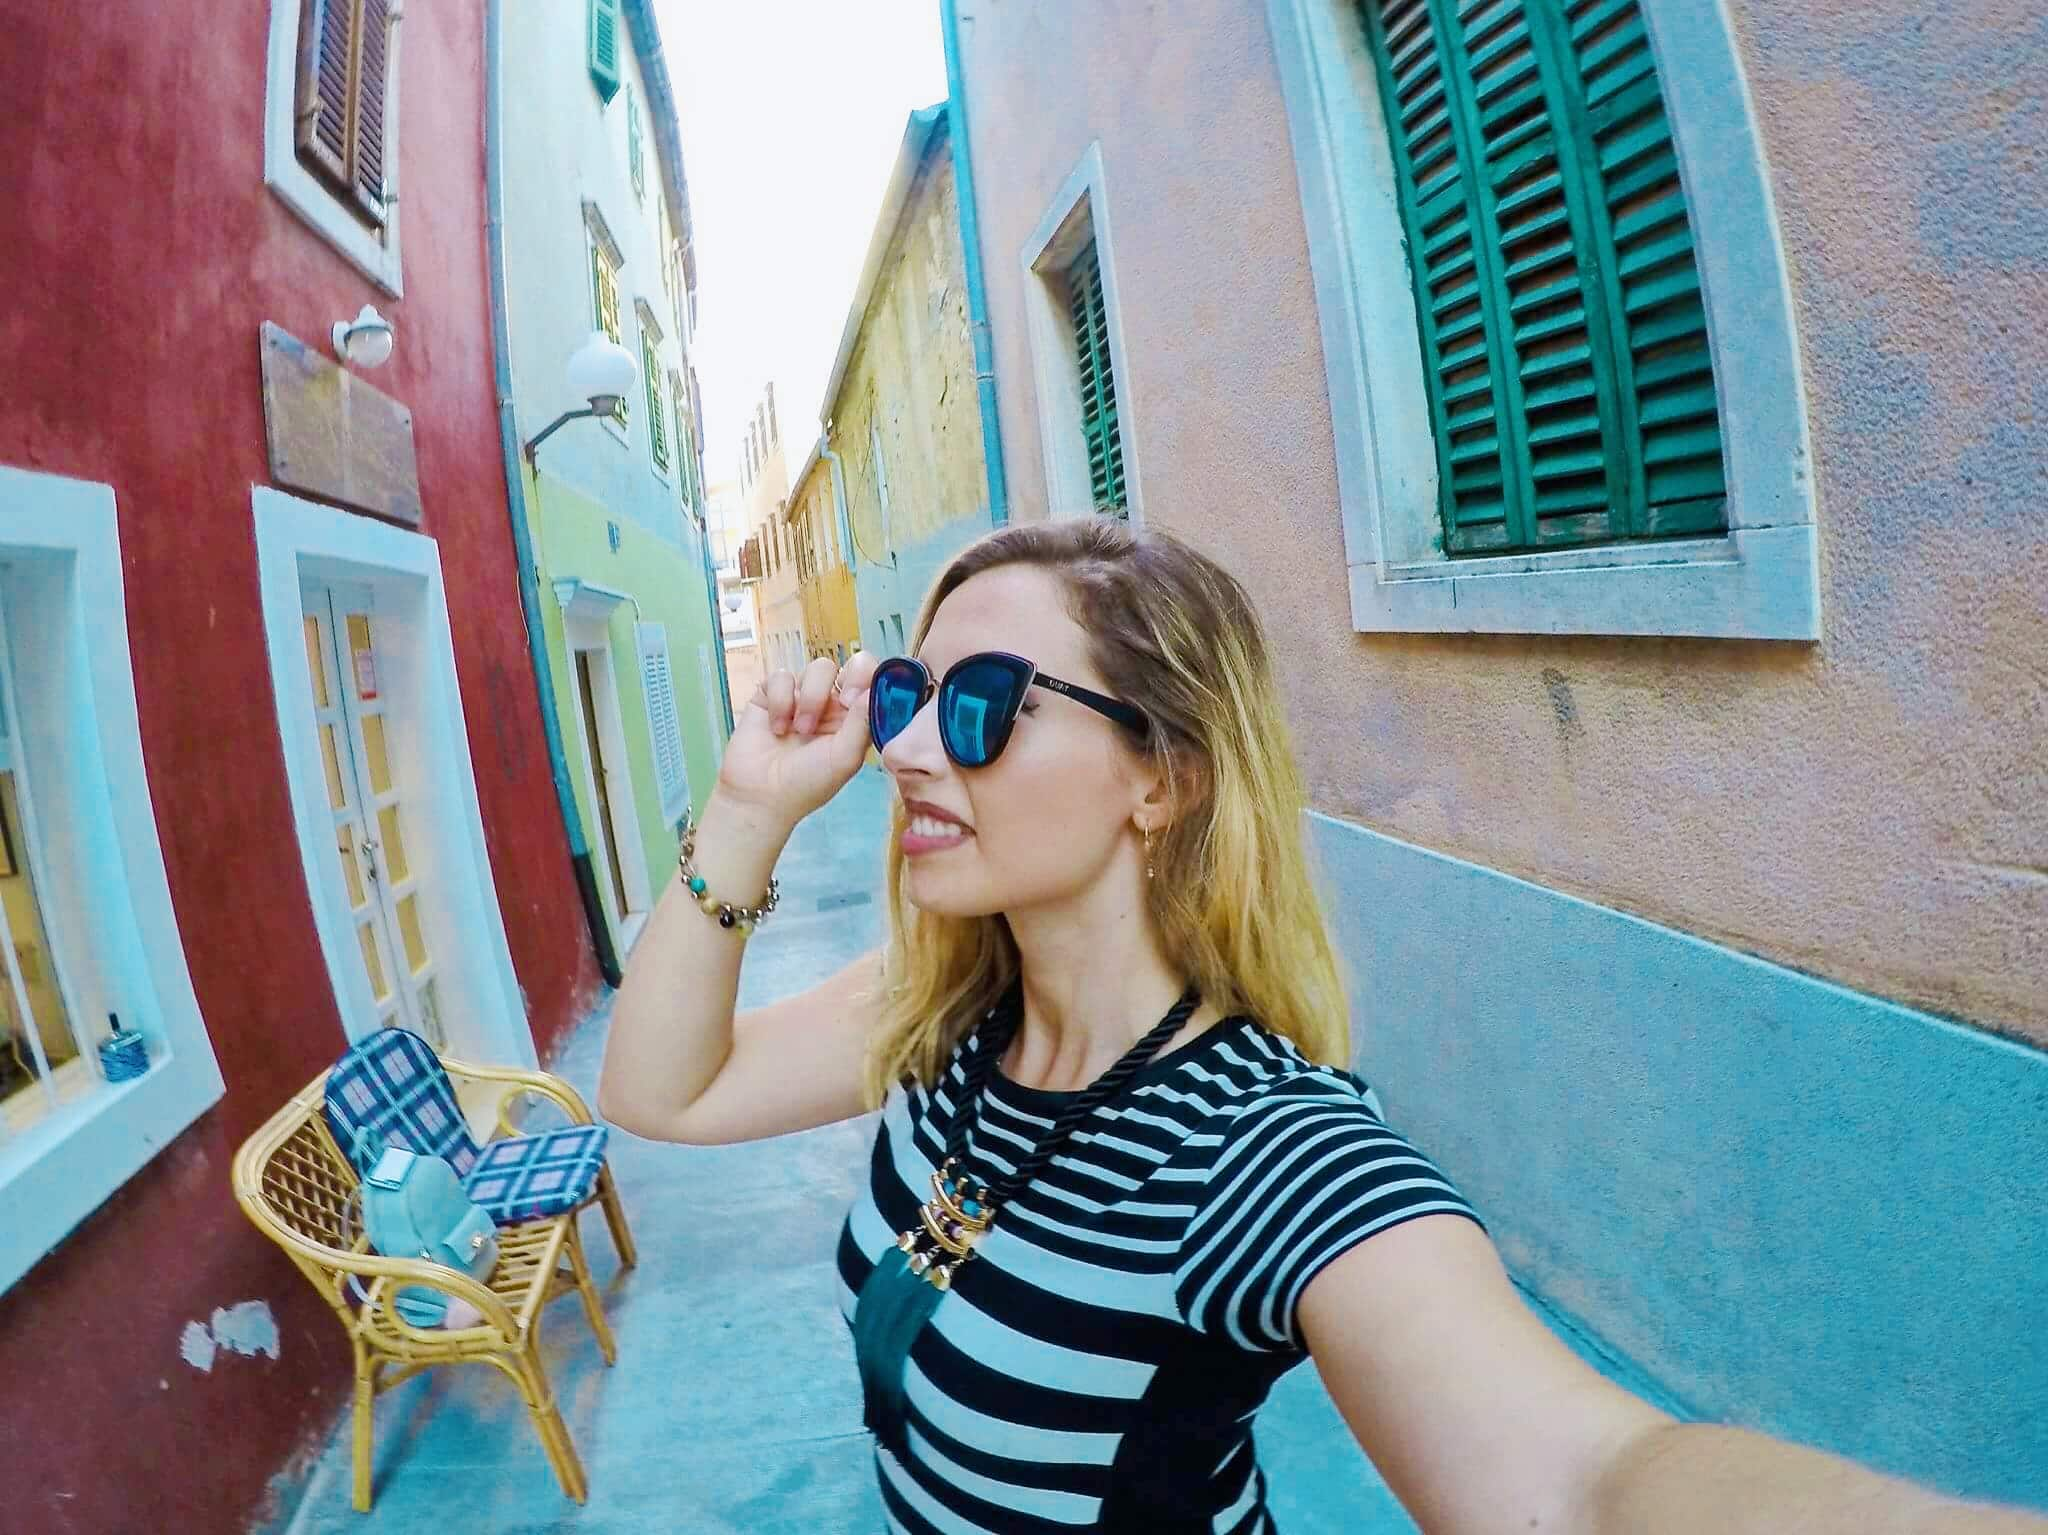 My First Time Solo Travel Trip (And What I Realized)